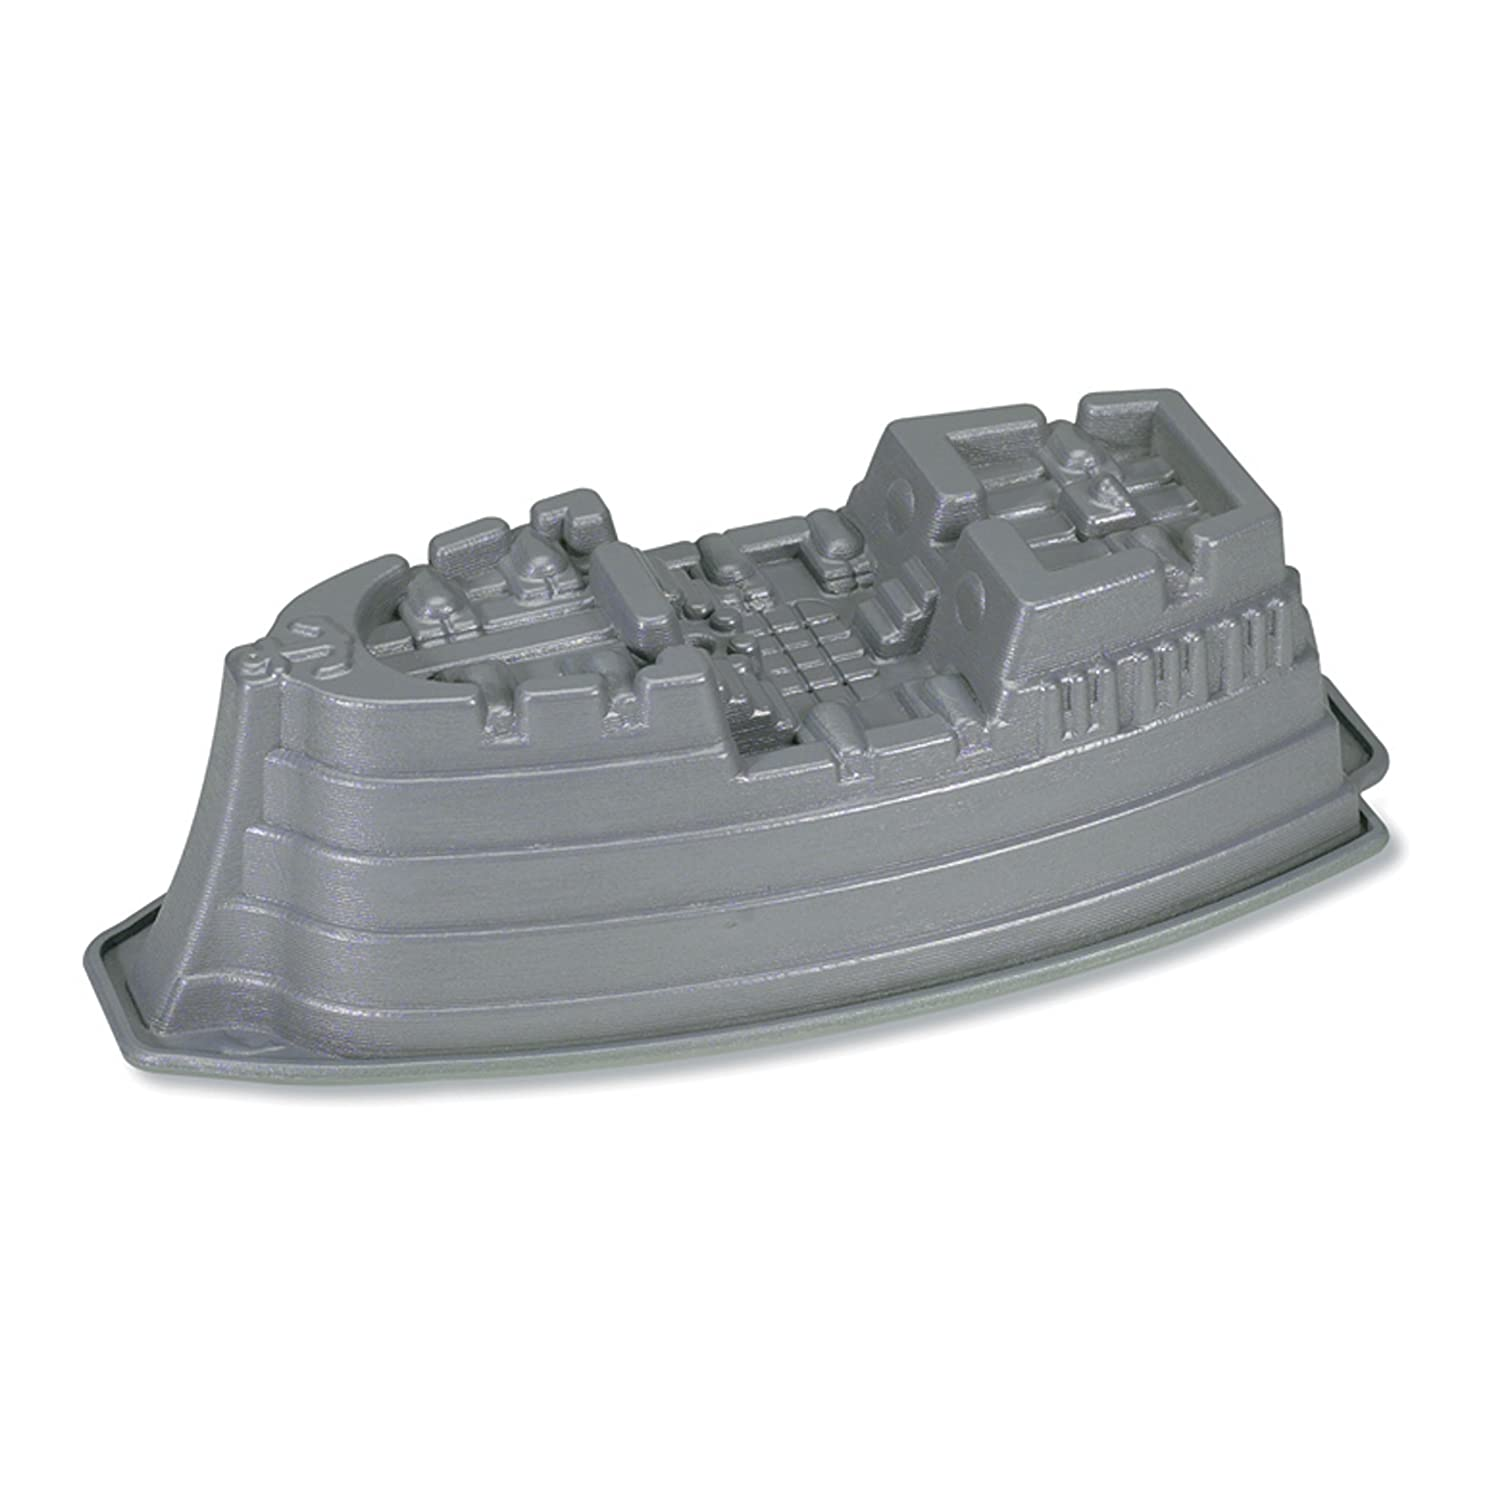 Nordicware 59237 Backform Piratenschiff